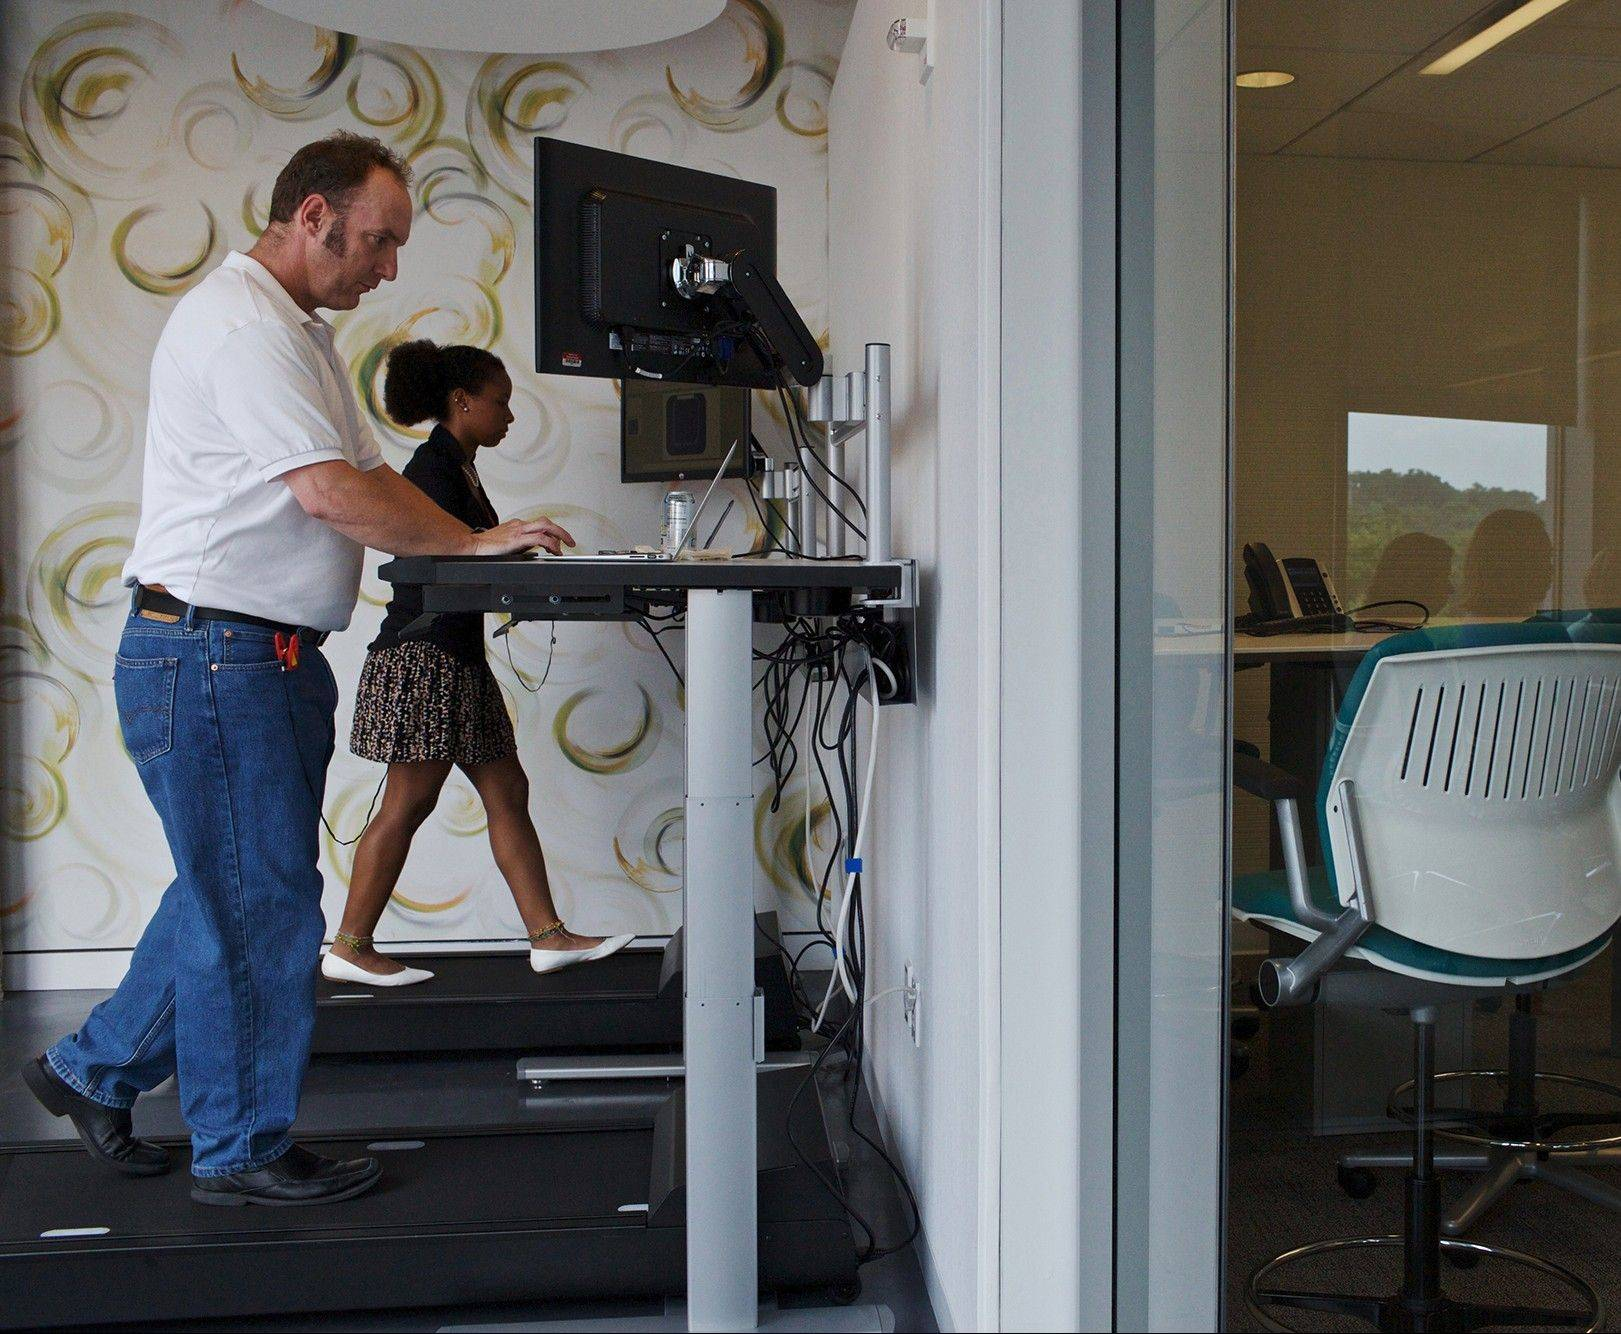 Michelle Schneider and Dave Dunn use treadmill desks at Evolent, a health care startup in Arlington, Va. Researchers are trying to determine whether the equipment allows people to burn off glucose that accumulates in the bloodstream.